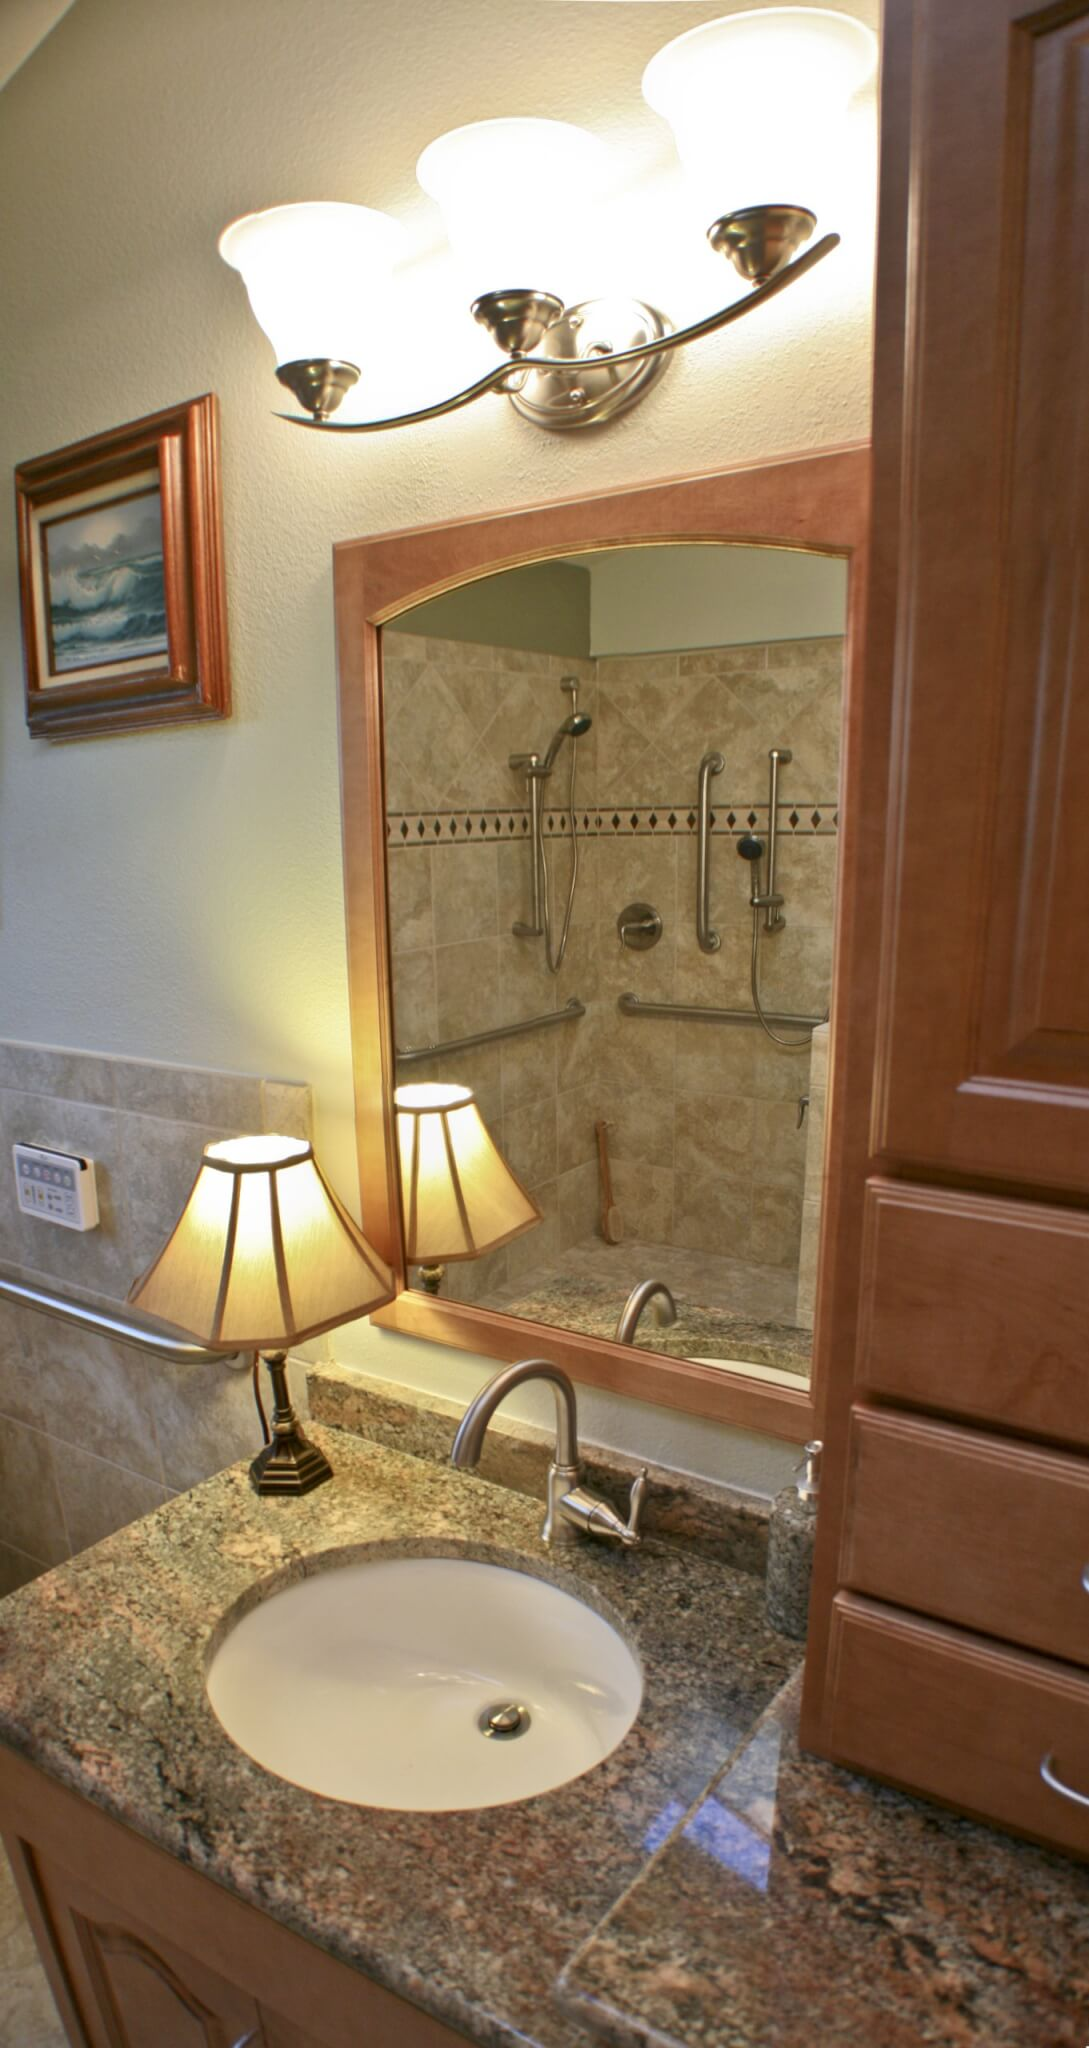 Remodeling Services - Colorado Springs - The Remodeler